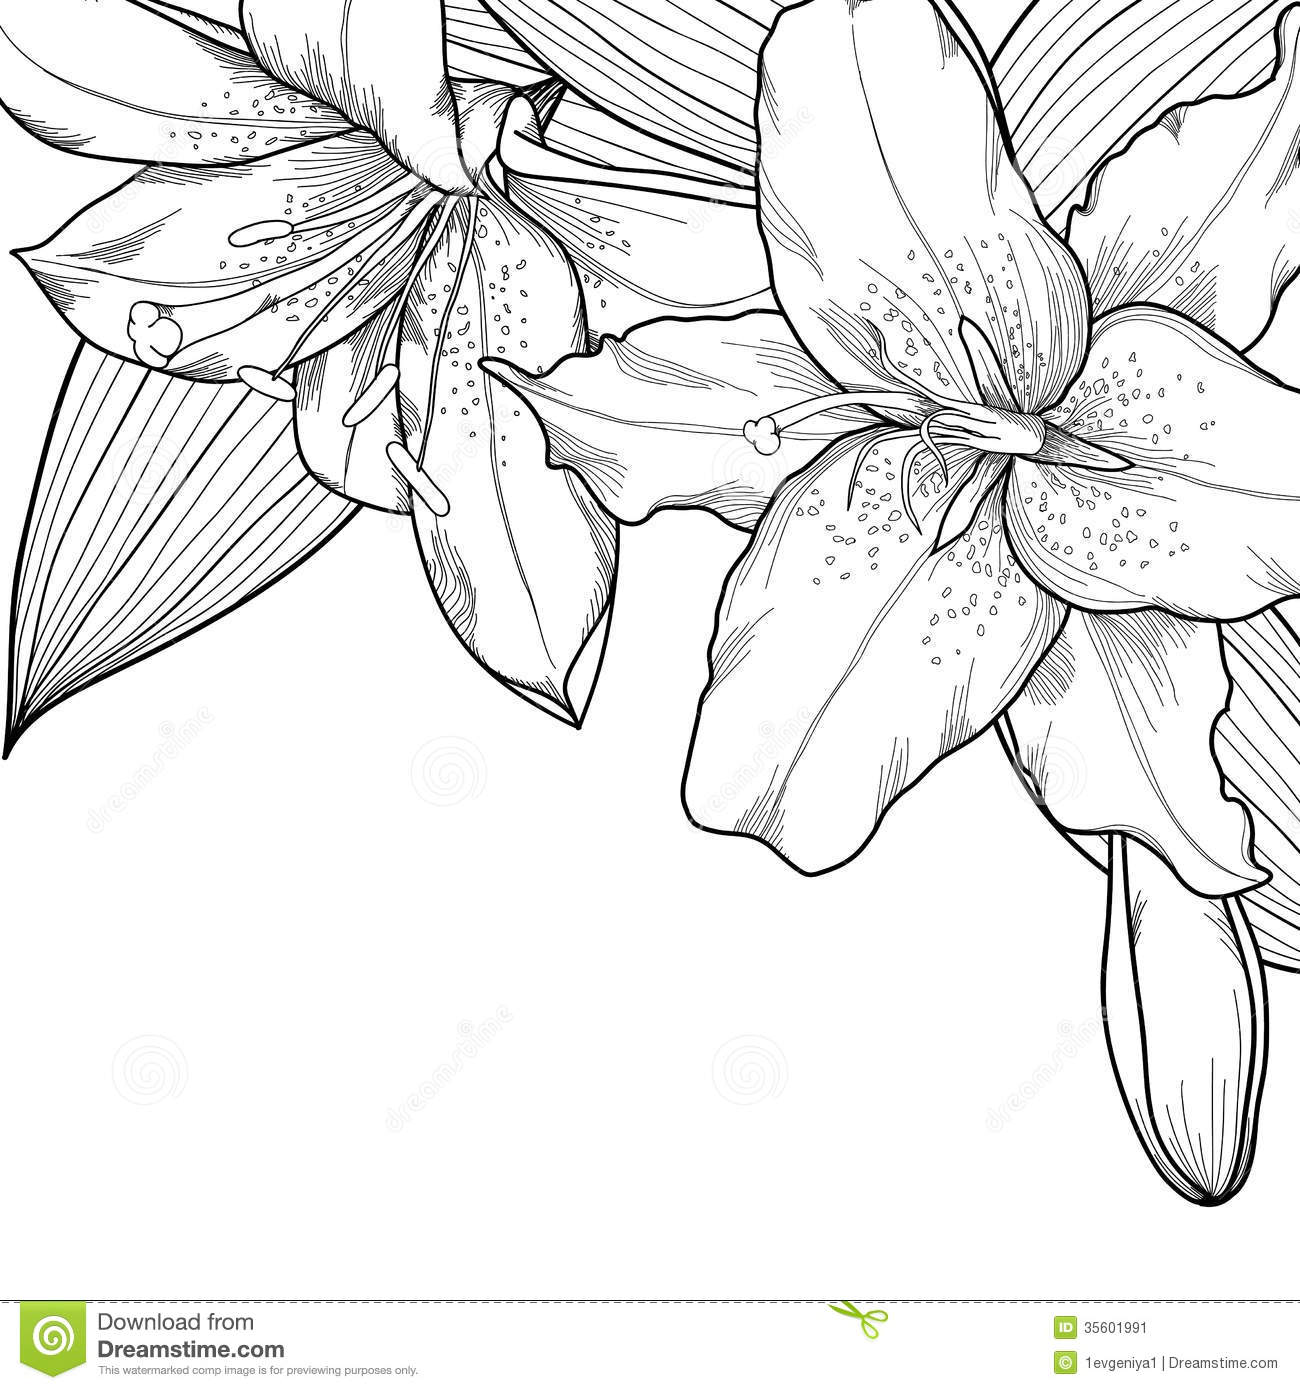 Lilies graphics svg royalty free download Lilies graphics - ClipartFest svg royalty free download